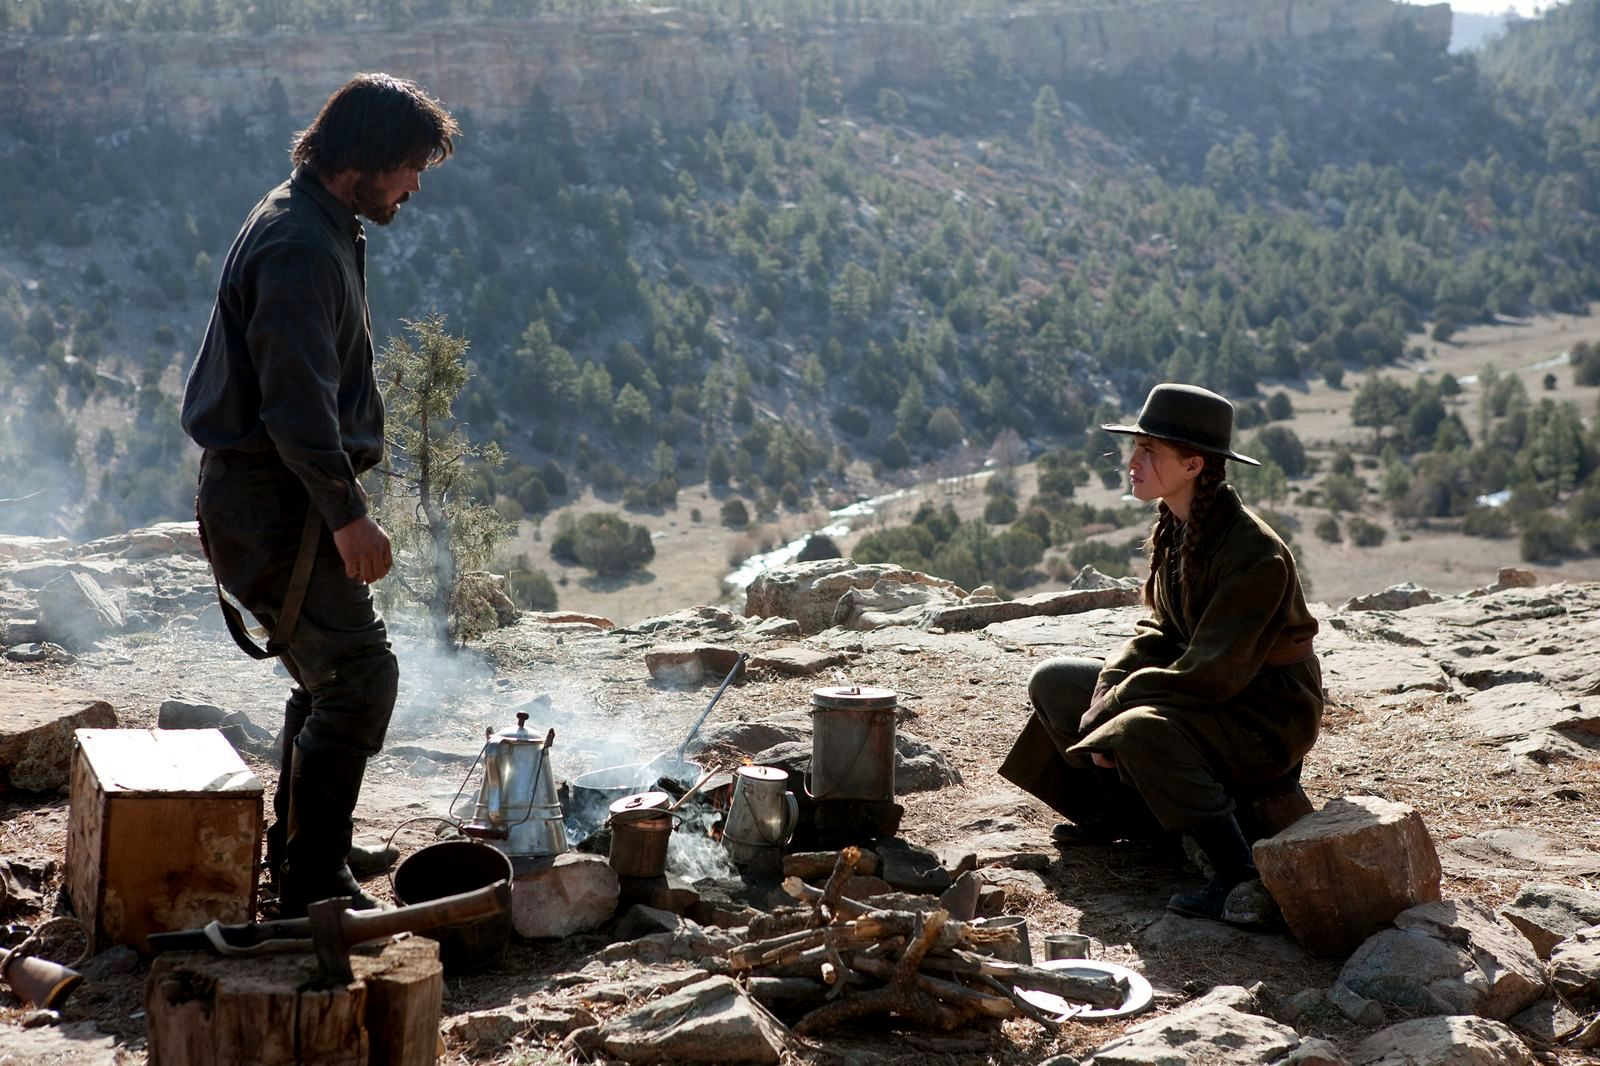 Rooster and Mattie warm up with a cup of coffee, potentially lending the film its title: True Grit. (photo credit: Paramount Pictures)